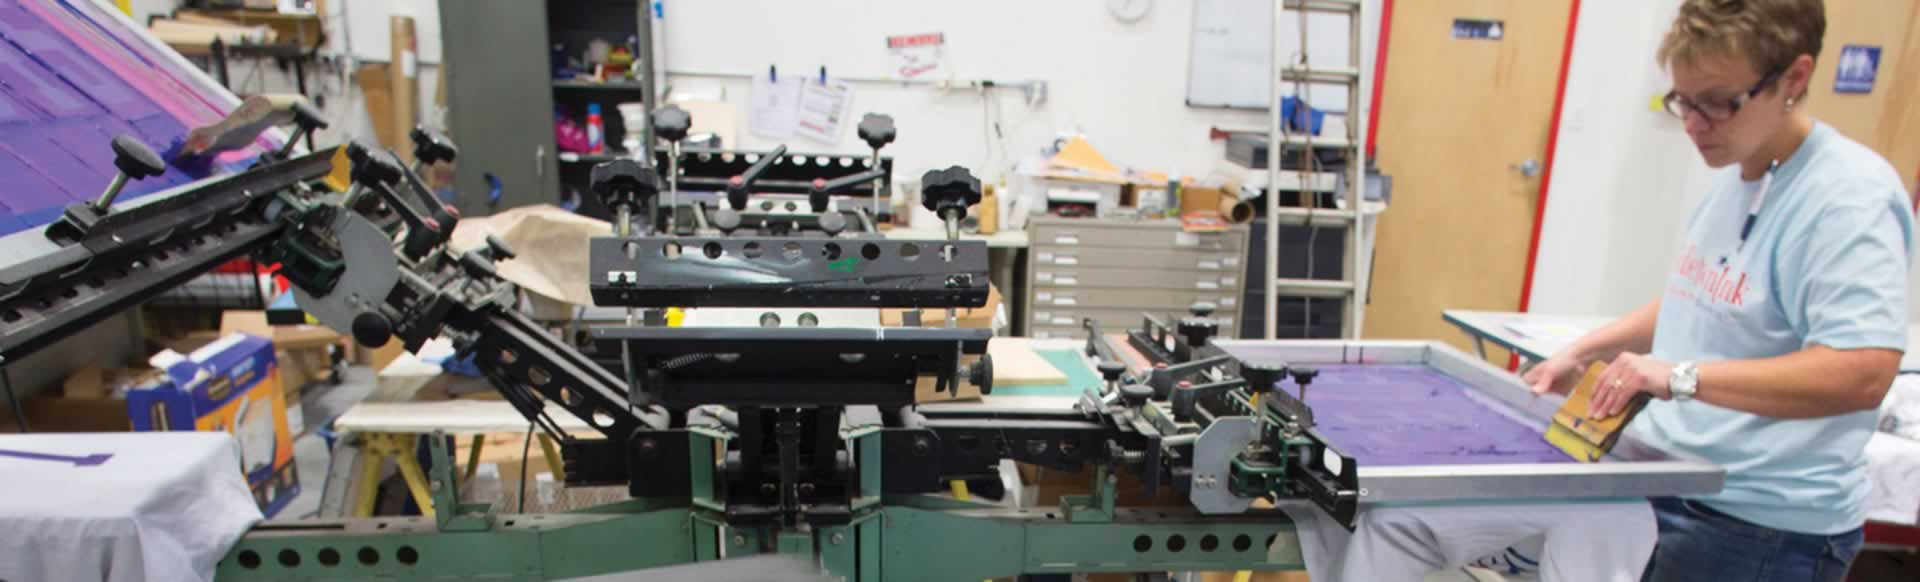 Screen Printing Equipment Screen Printing Supplies Screen Printing